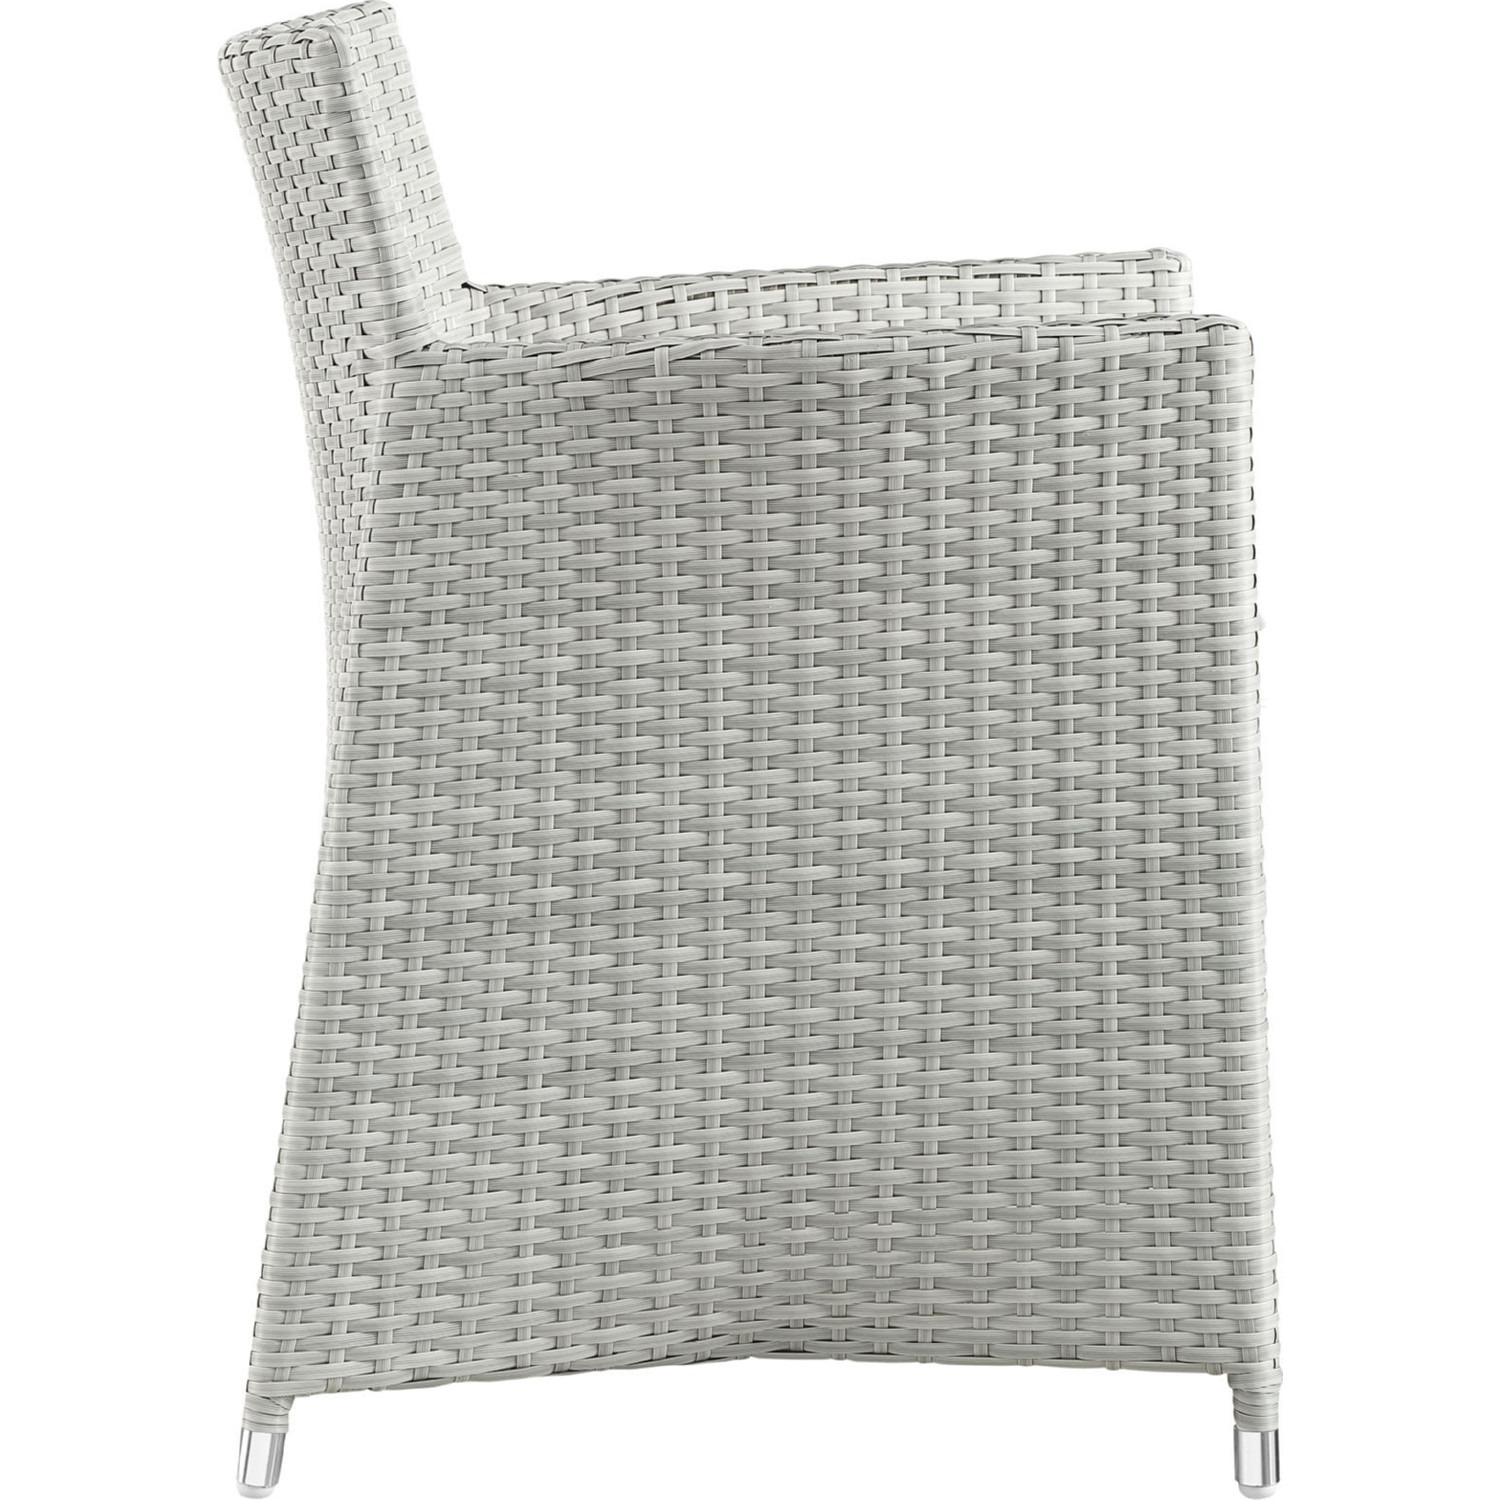 Modern 7-Piece Dining Set In Gray Rattan Weave - image-2